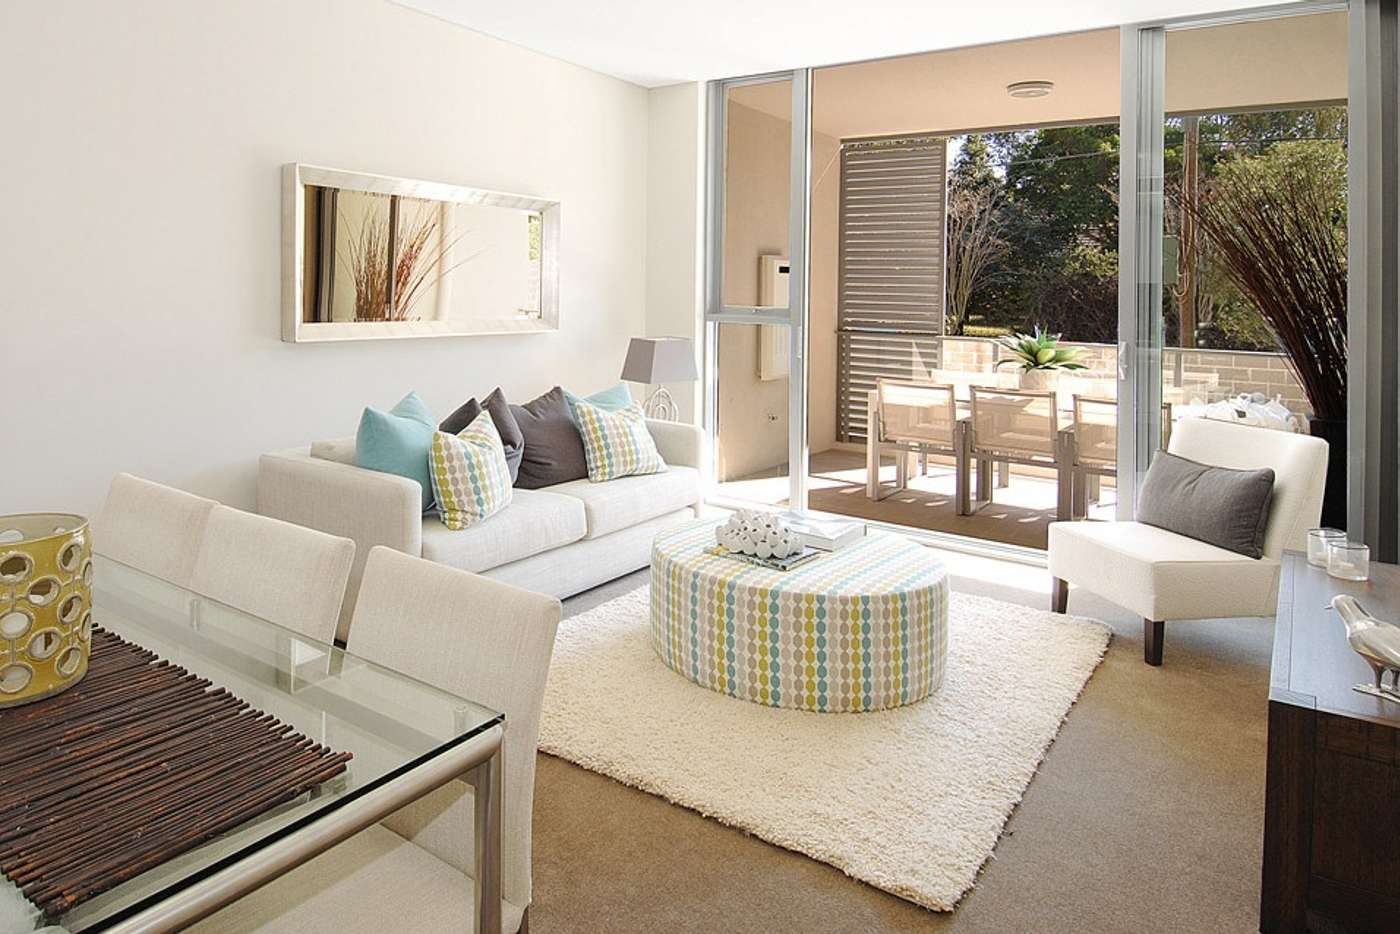 Main view of Homely apartment listing, 40/554-560 Mowbray Road, Lane Cove NSW 2066